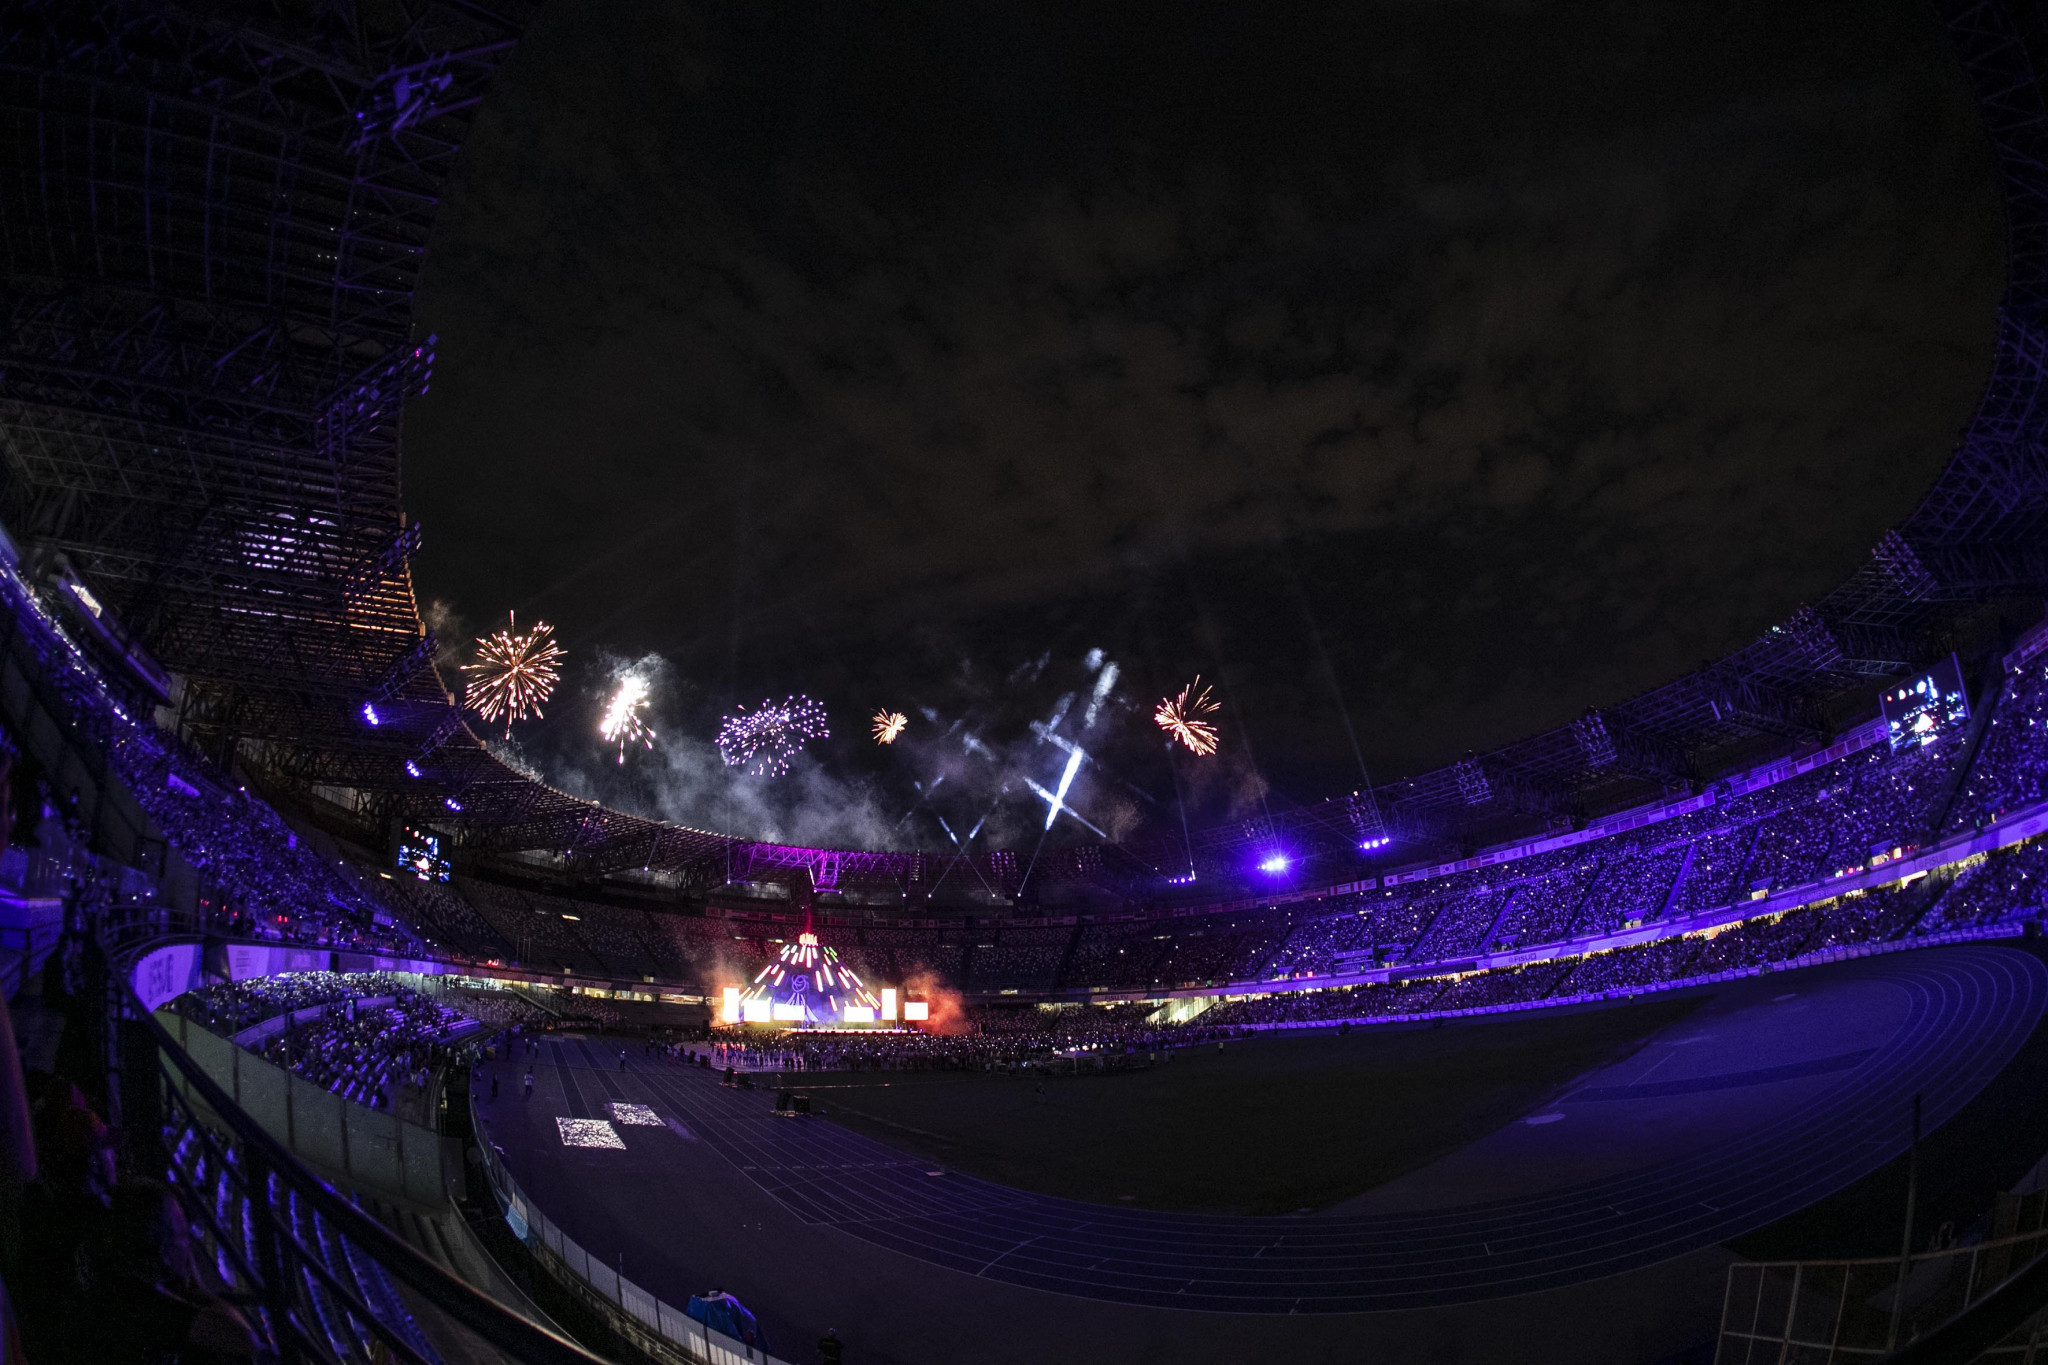 Fireworks then marked the end of the Closing Ceremony and the 2019 Summer Universiade ©Naples 2019